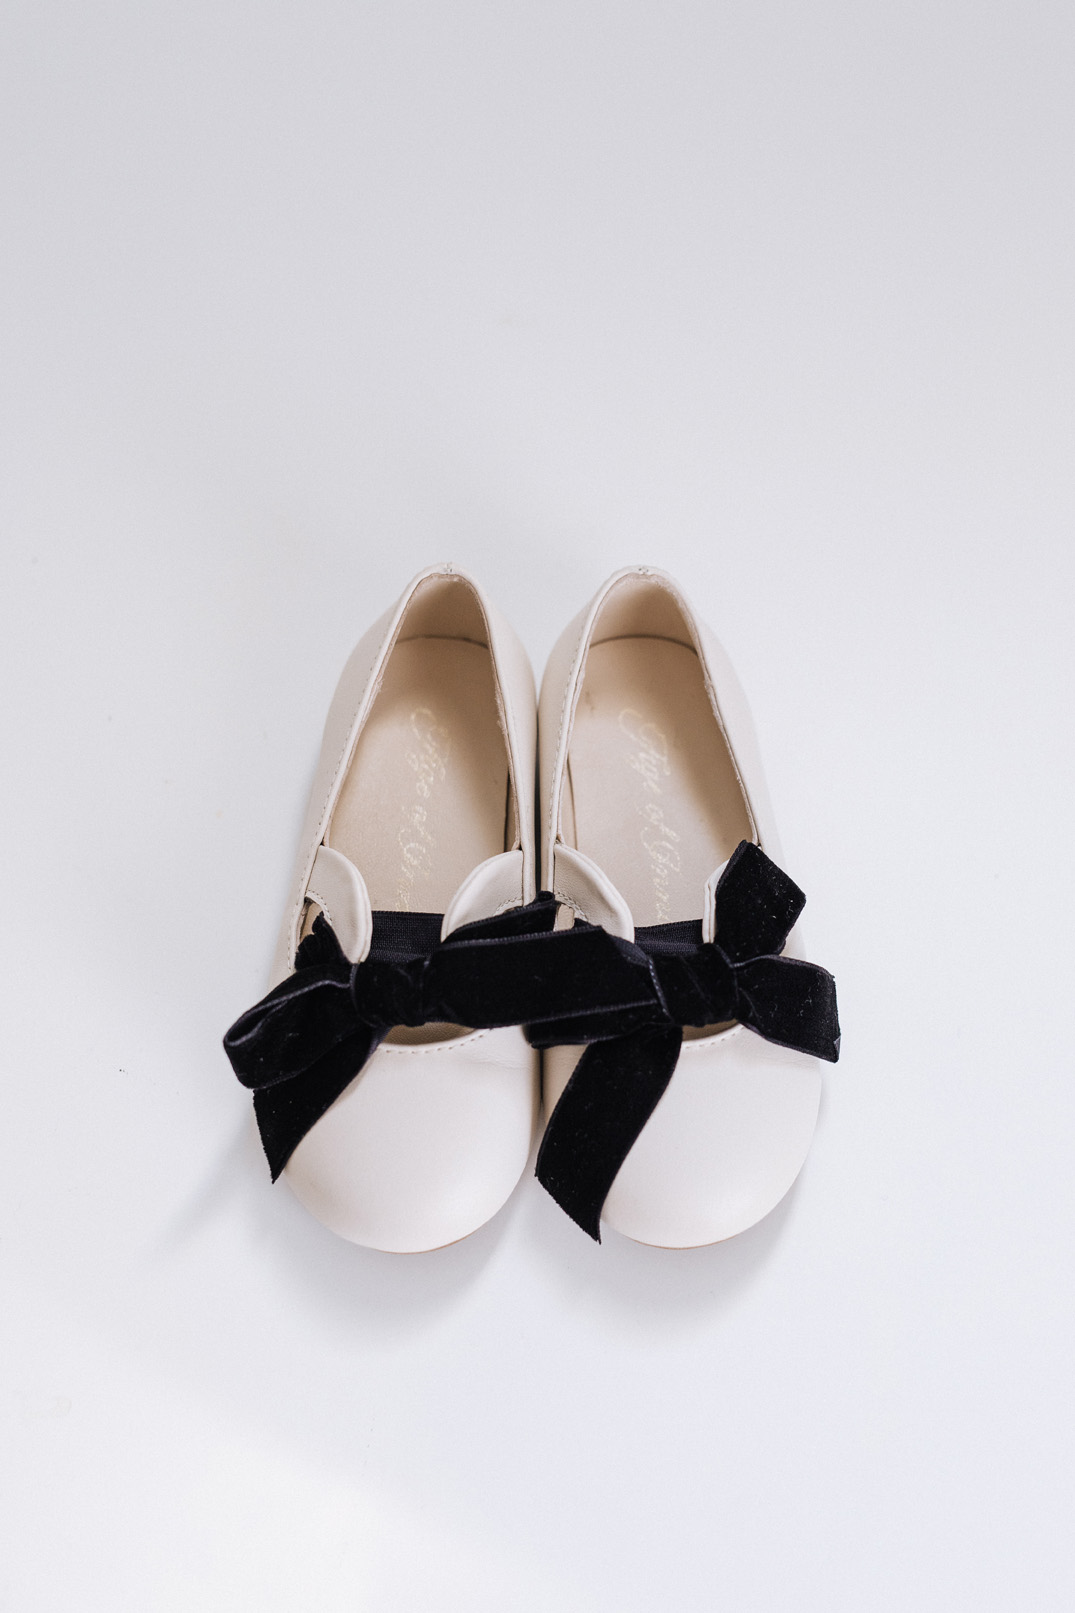 Matching shoes for the flower girl